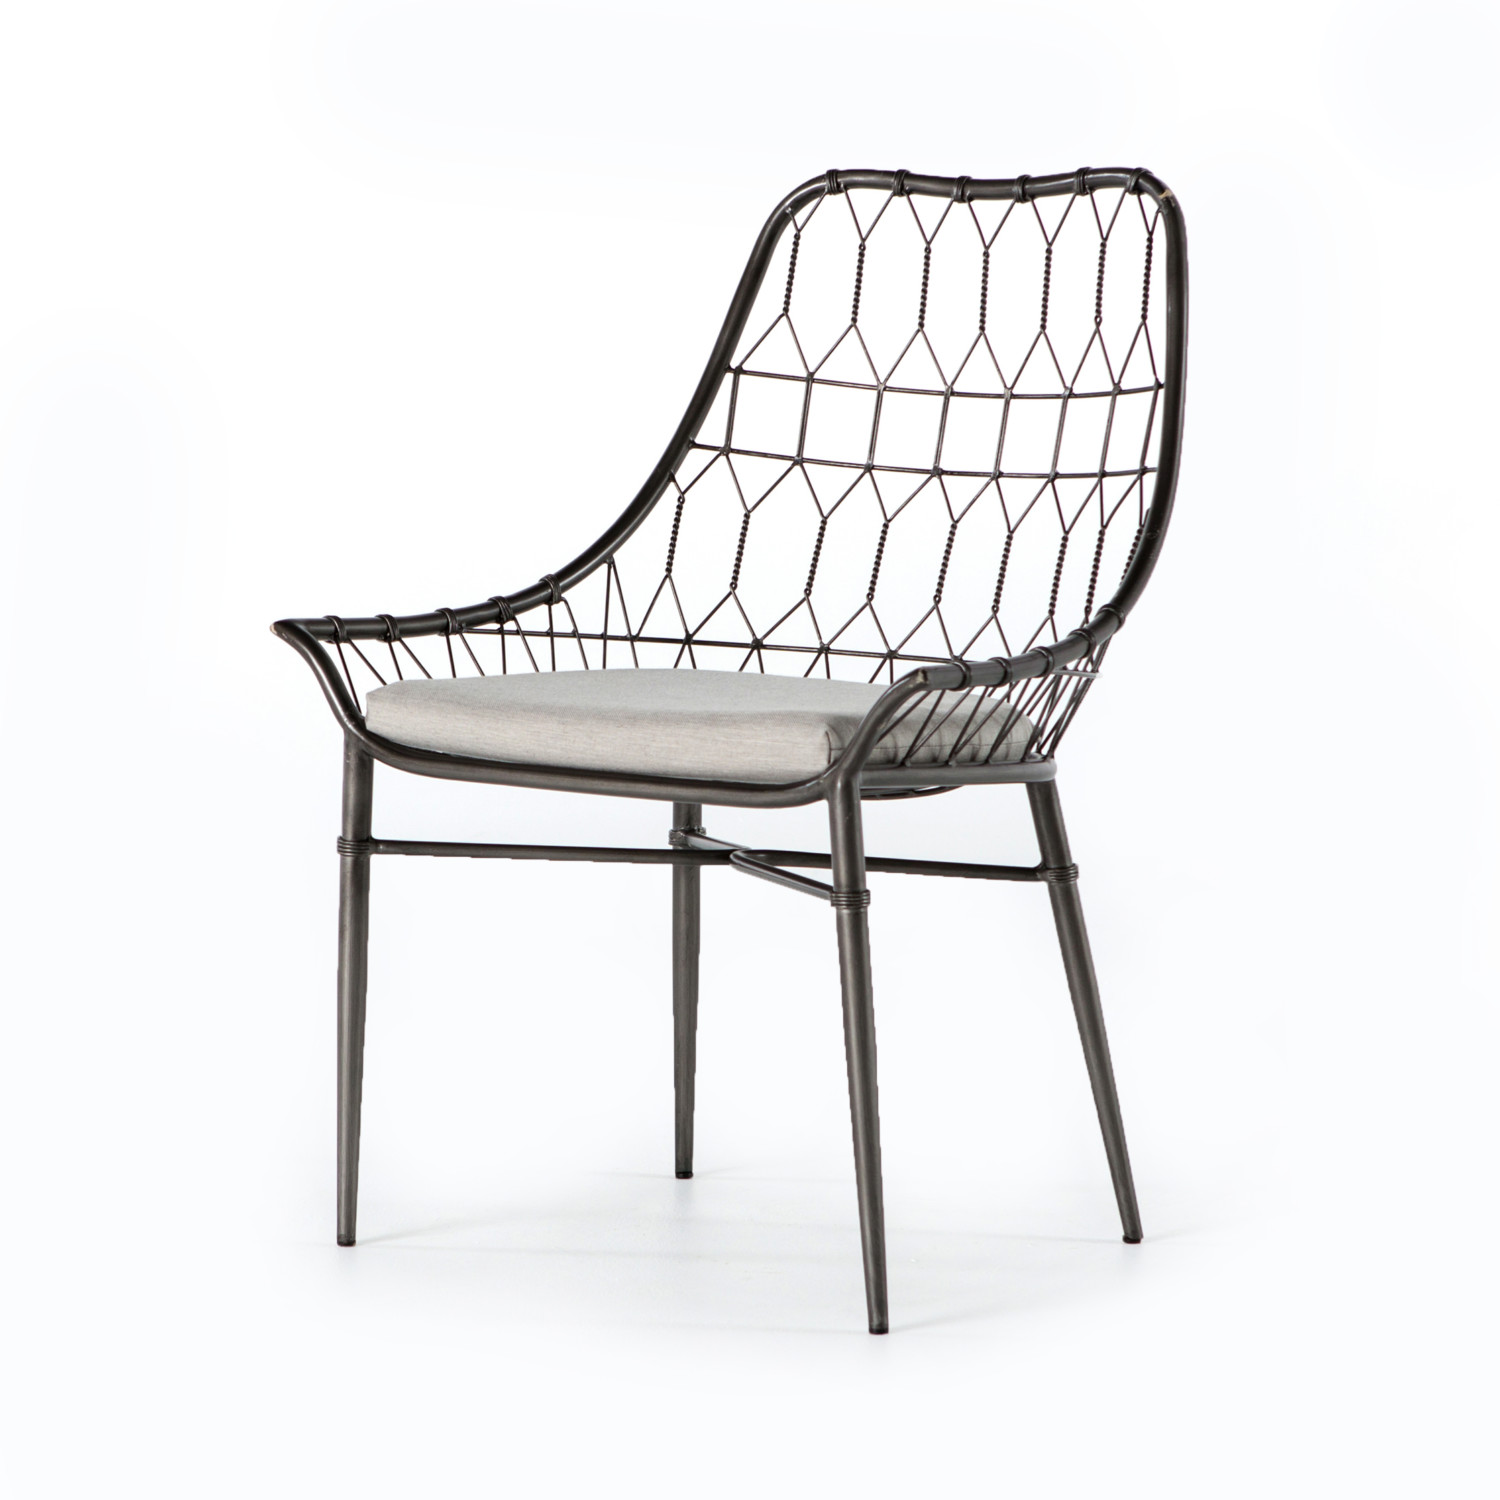 Swell Modern Wire Dining Chairs Creativecarmelina Interior Chair Design Creativecarmelinacom